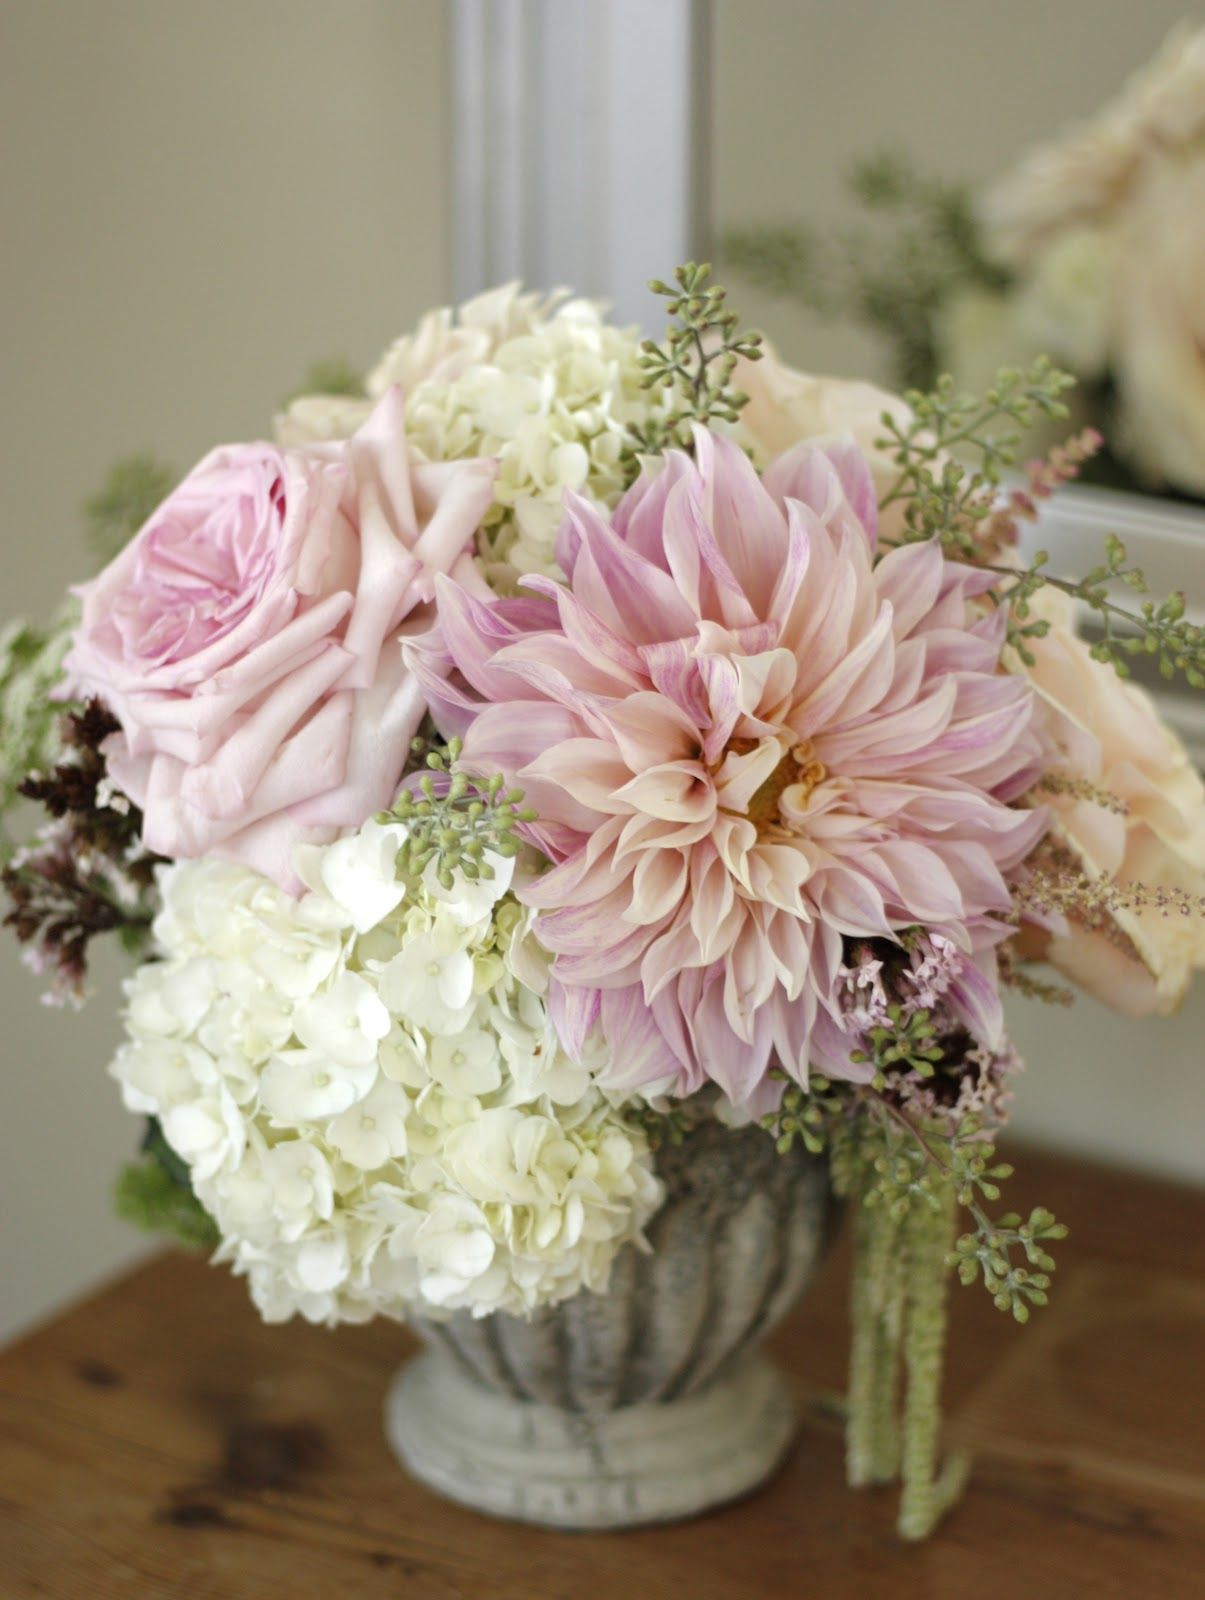 In Good Taste Fresh Flowers Flower Bouquet Wedding Hydrangea Bouquet Wedding Hydrangeas Wedding